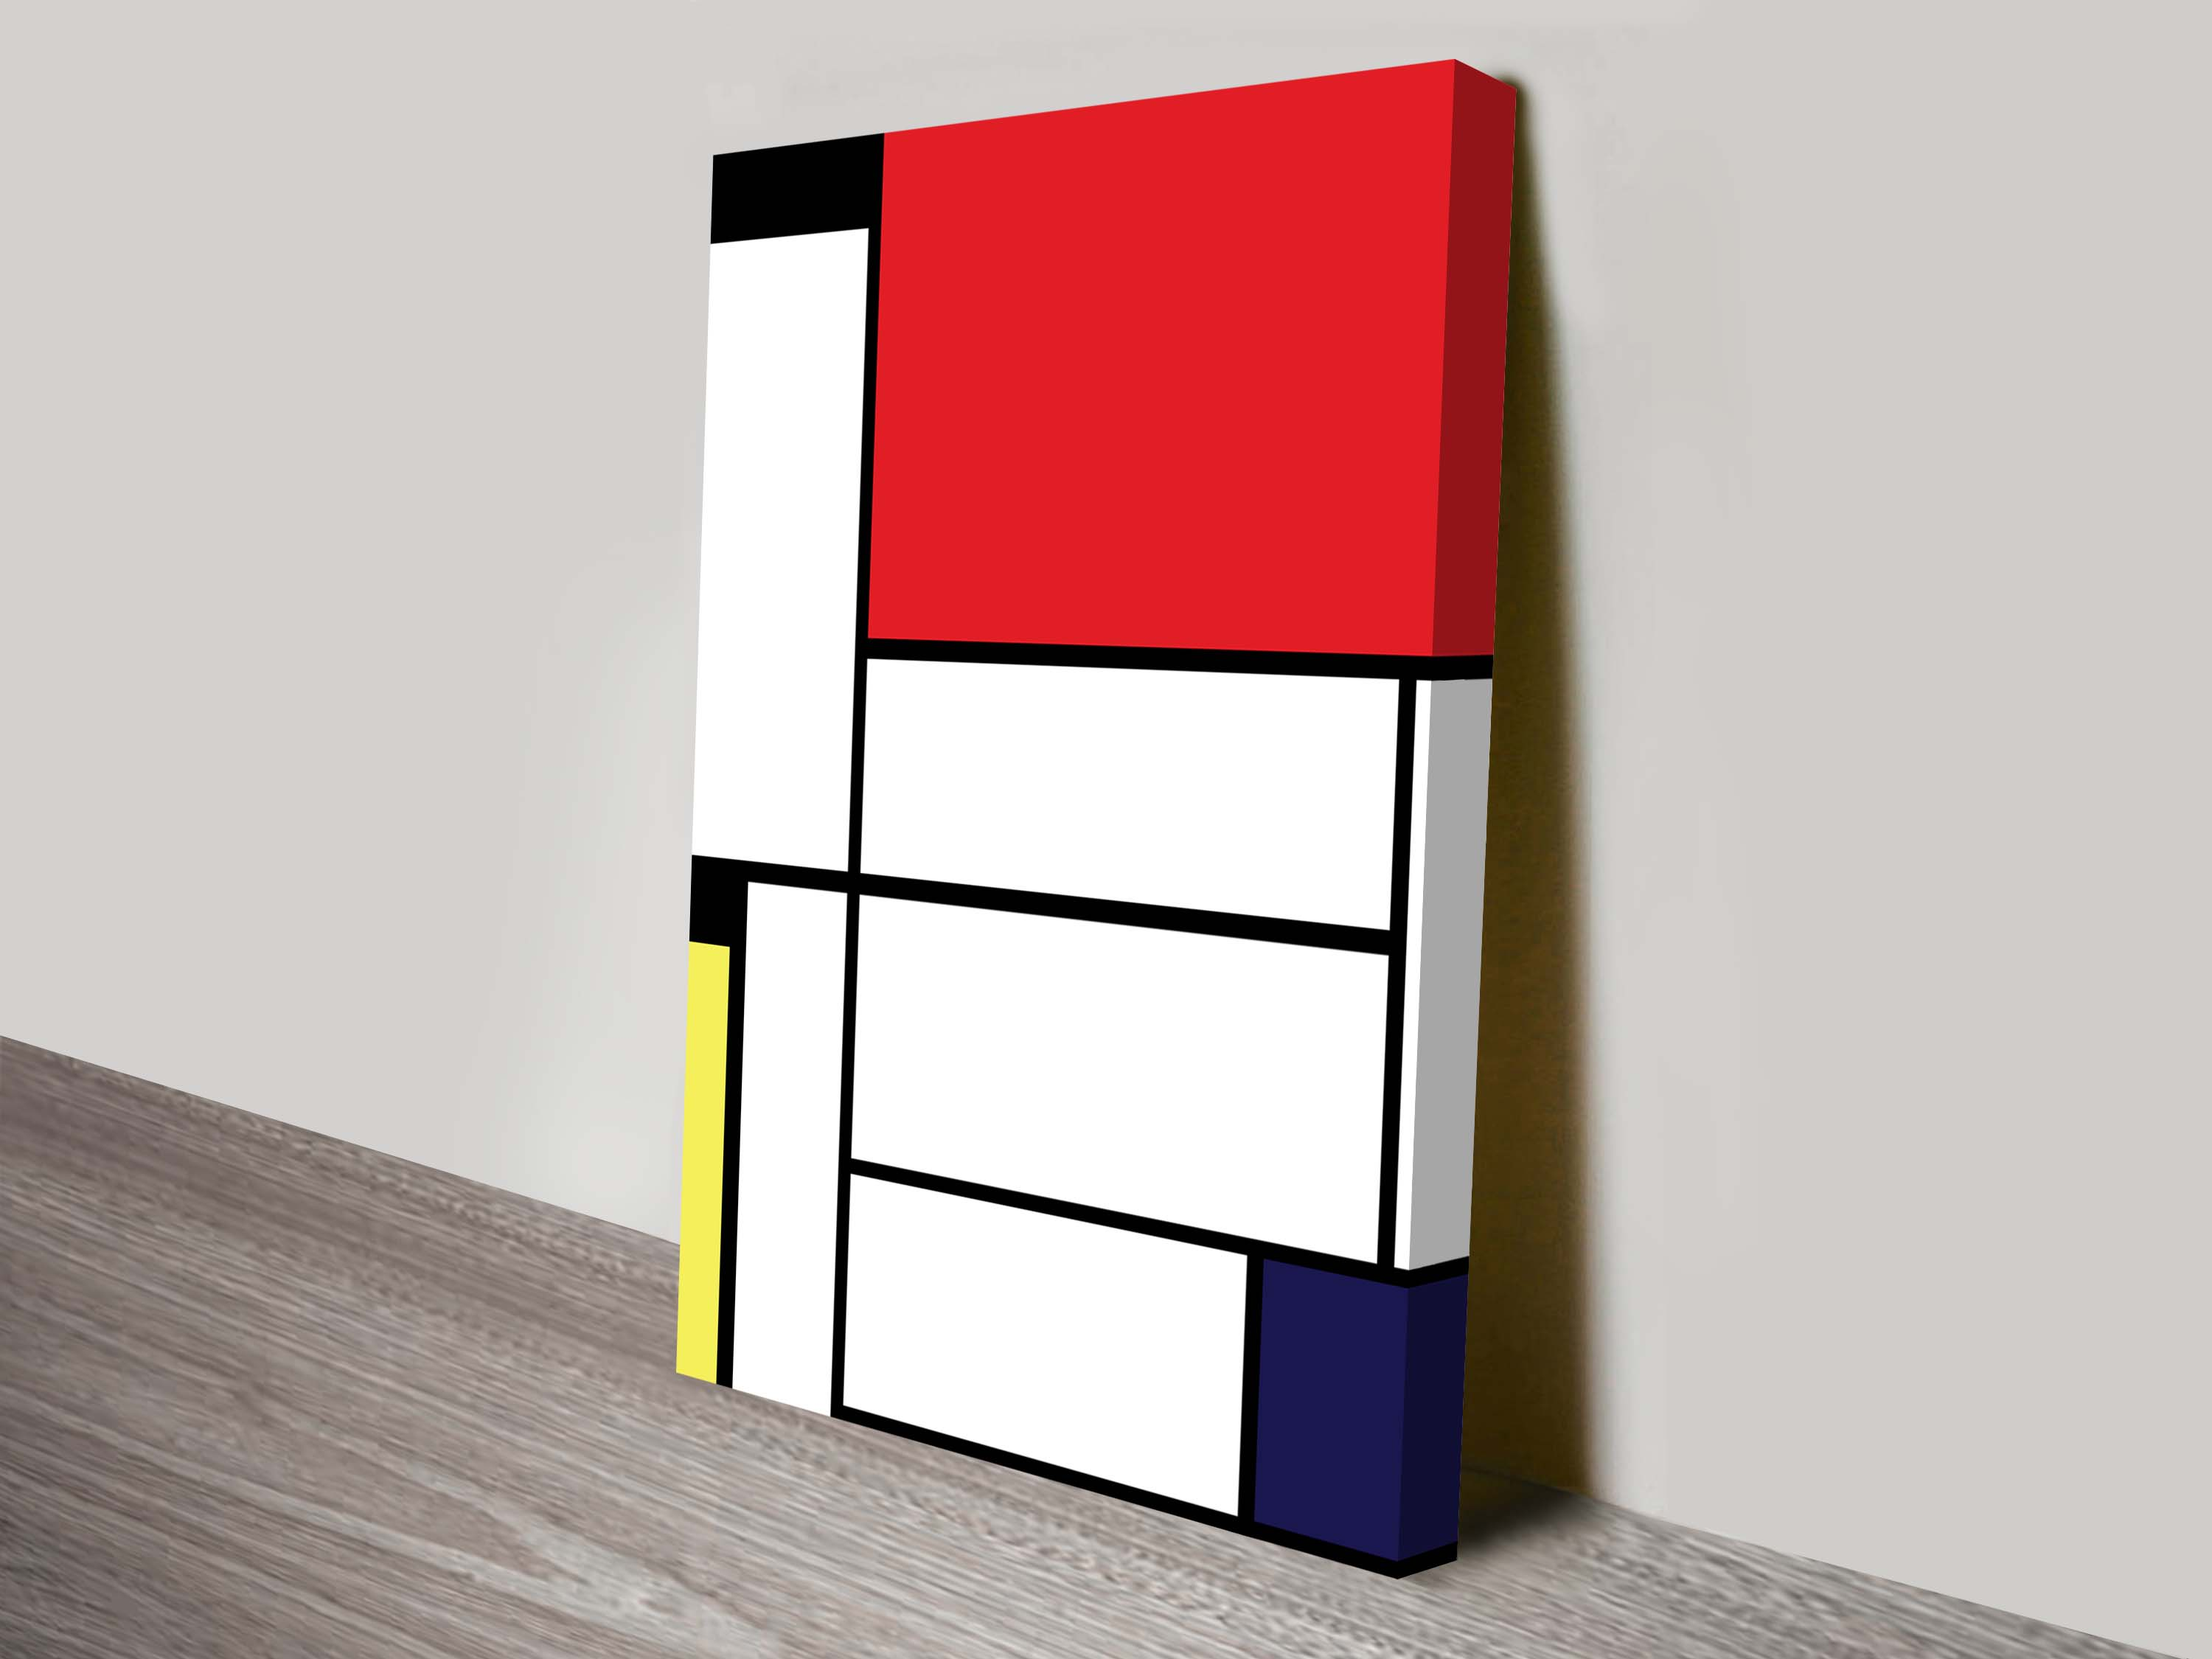 Mondrian Wall Mondrian Tableau Ii Wall Art Painting Print Online Artwork